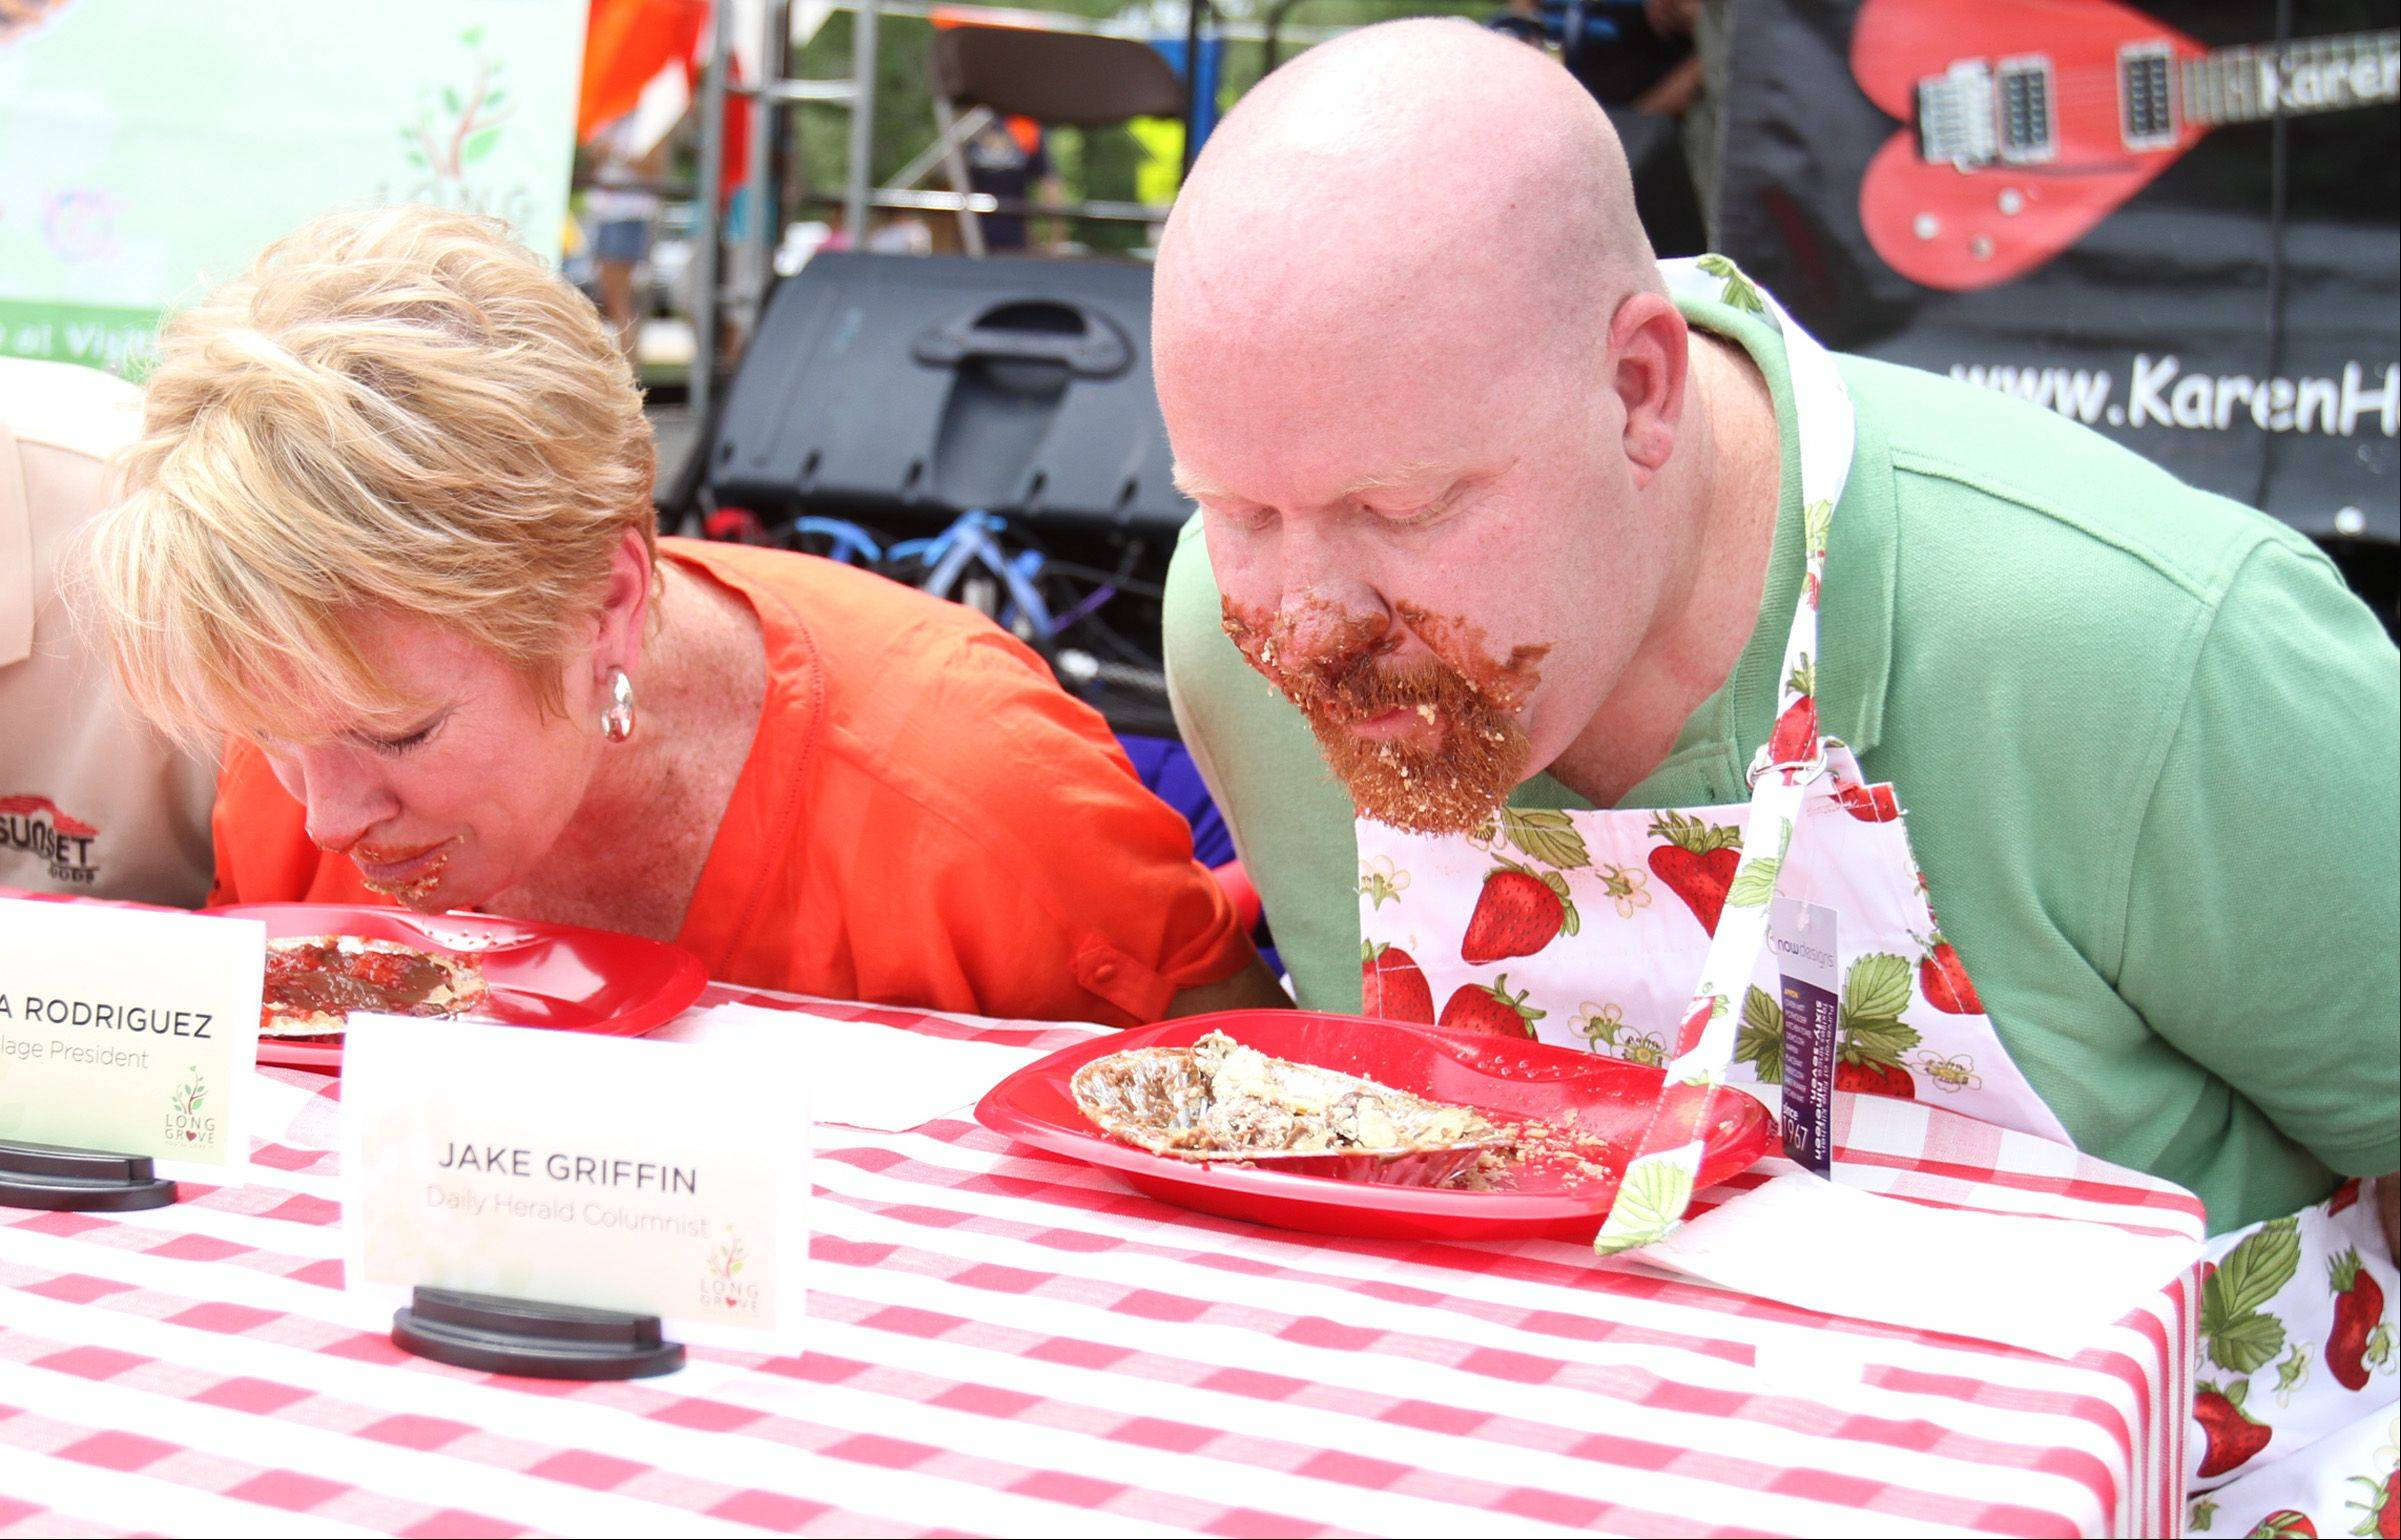 With their hands tied behind their backs, Daily Herald reporter Jake Griffin competes with Maria Rodriguez, Long Grove Village president, Ron Bernardi representing Sunset Foods, and John Garcia, ABC channel 7 anchor, in the celebrity division of Long Grove's pie-eating contest at the Long Grove Strawberry Festival on Saturday. The festival continues 10 a.m. to 6 p.m. Sunday.